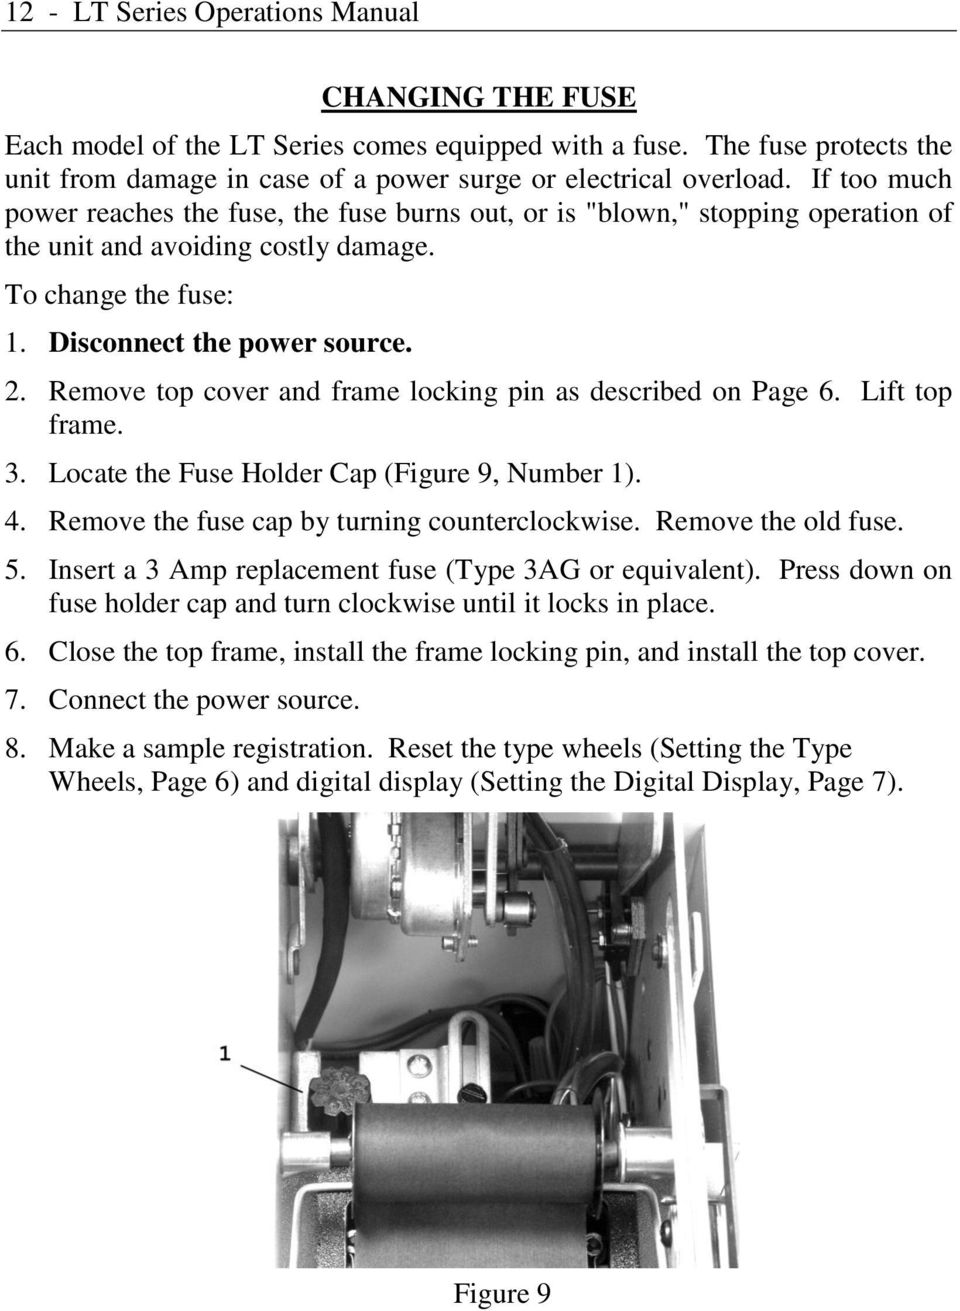 Remove top cover and frame locking pin as described on Page 6. Lift top frame. 3. Locate the Fuse Holder Cap (Figure 9, Number 1). 4. Remove the fuse cap by turning counterclockwise.